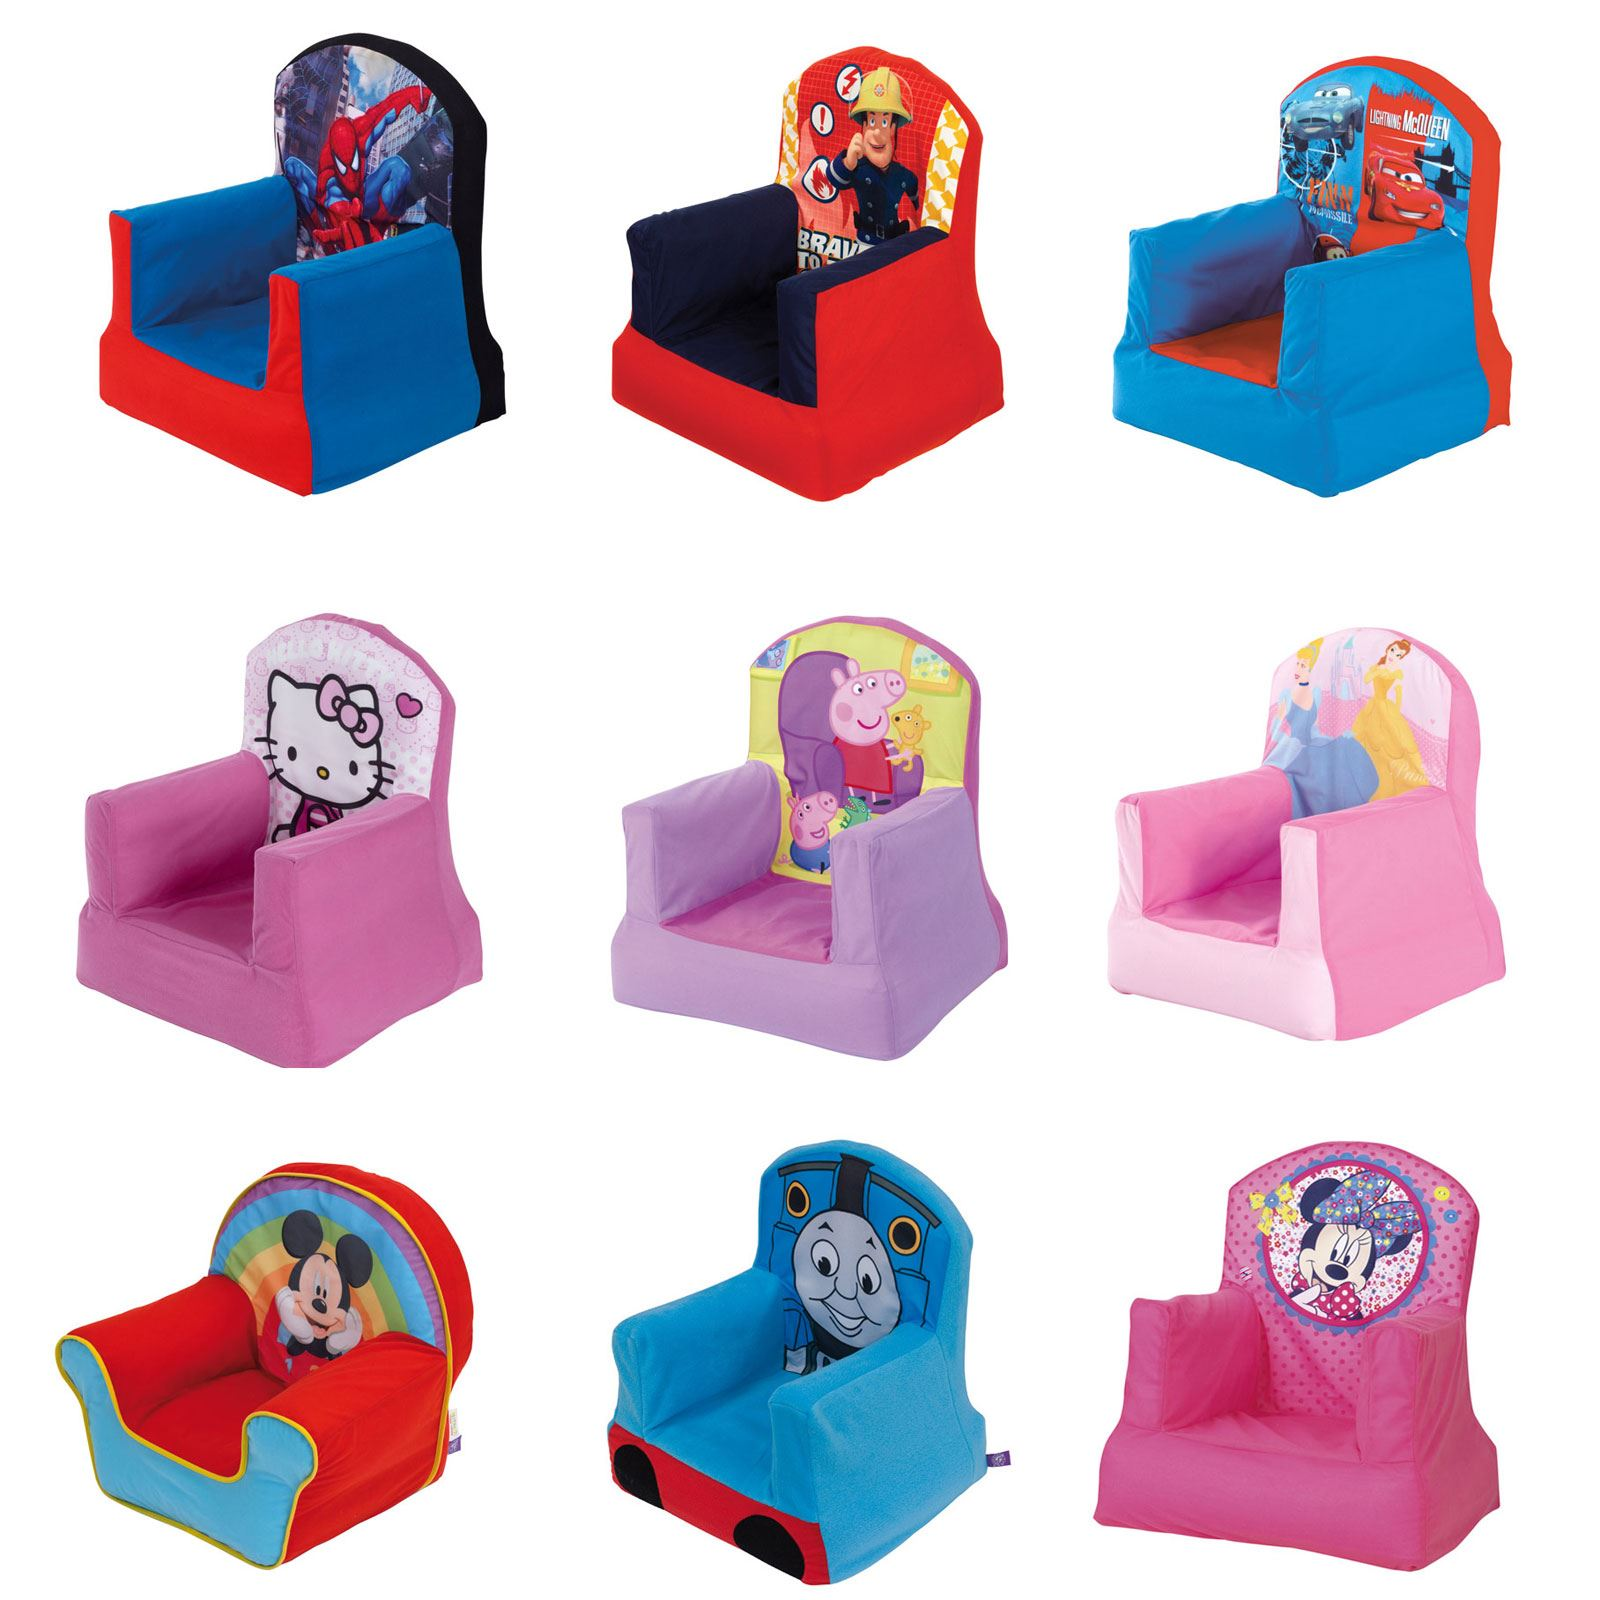 soft chairs for toddlers desk chair ratings official disney and character childrens cosy